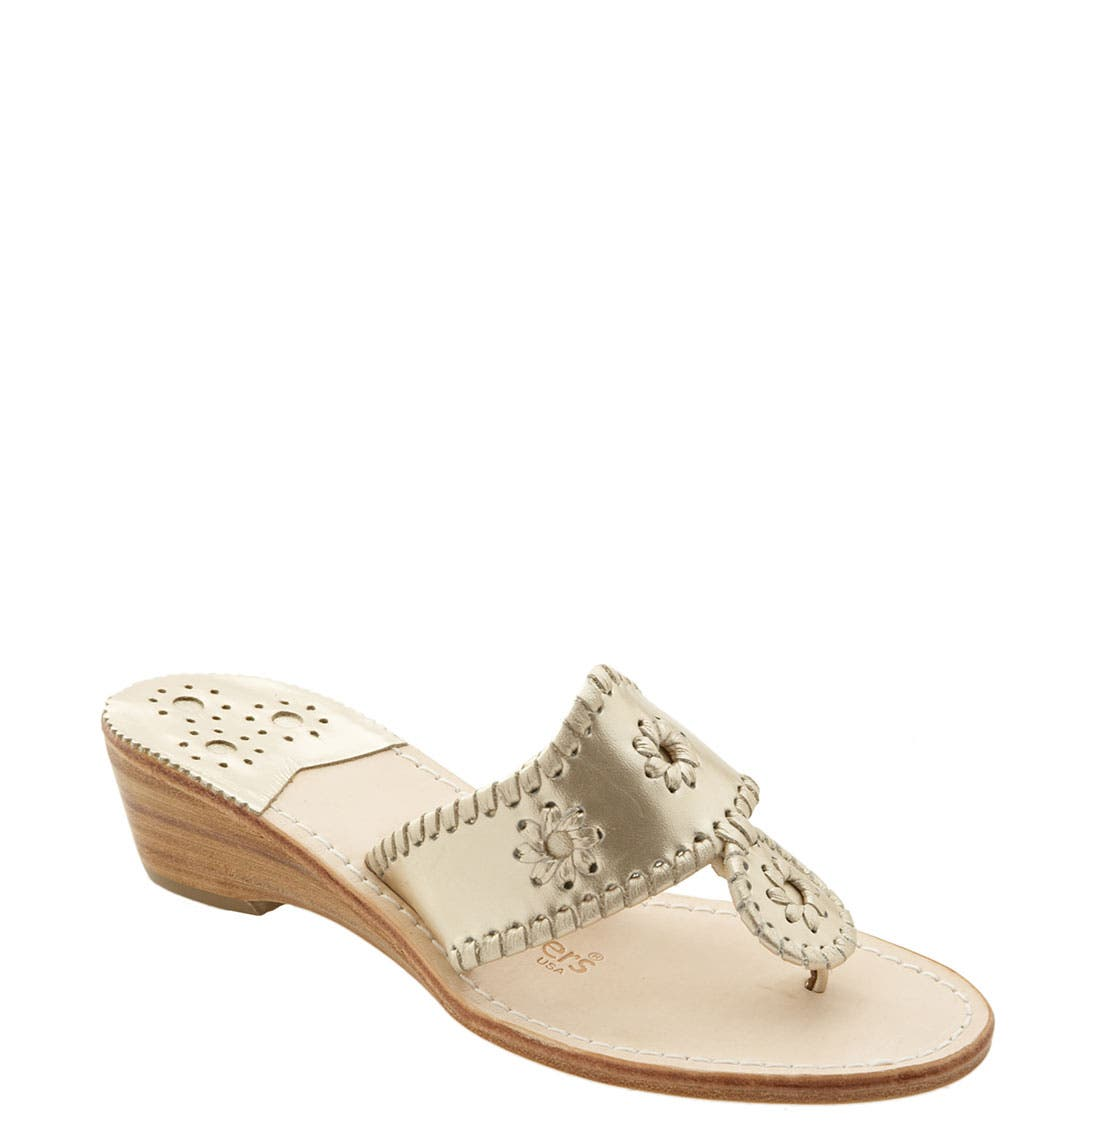 Main Image - Jack Rogers Wedge Sandal (Women)